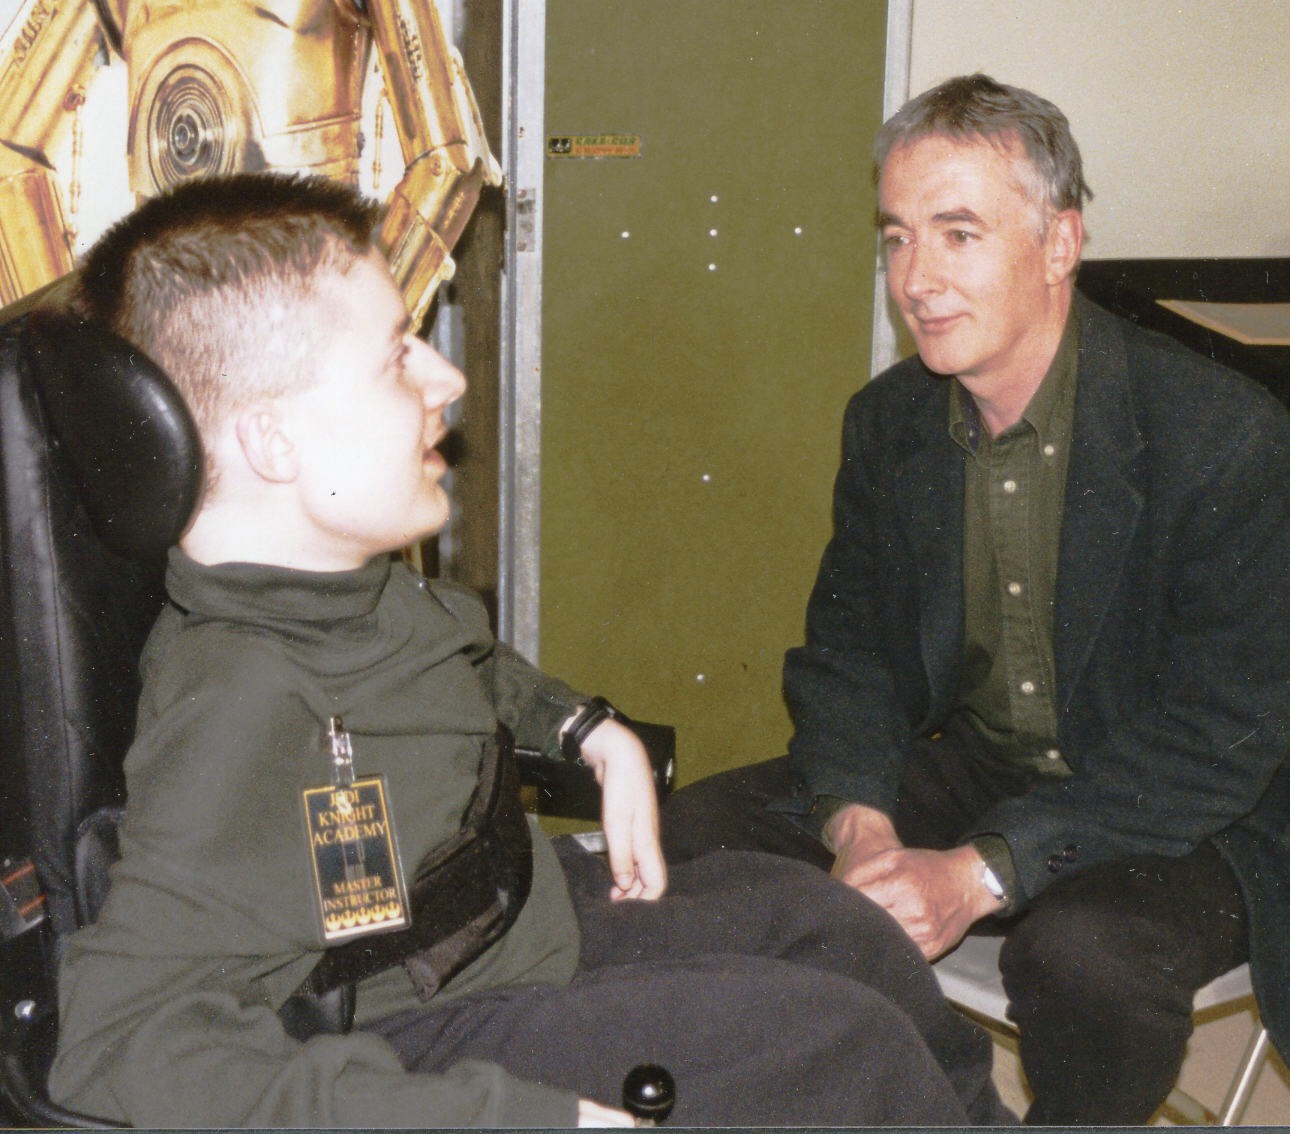 Ben with Anthony Daniels (C3PO), 1997 Hackensack Star Wars Convention.